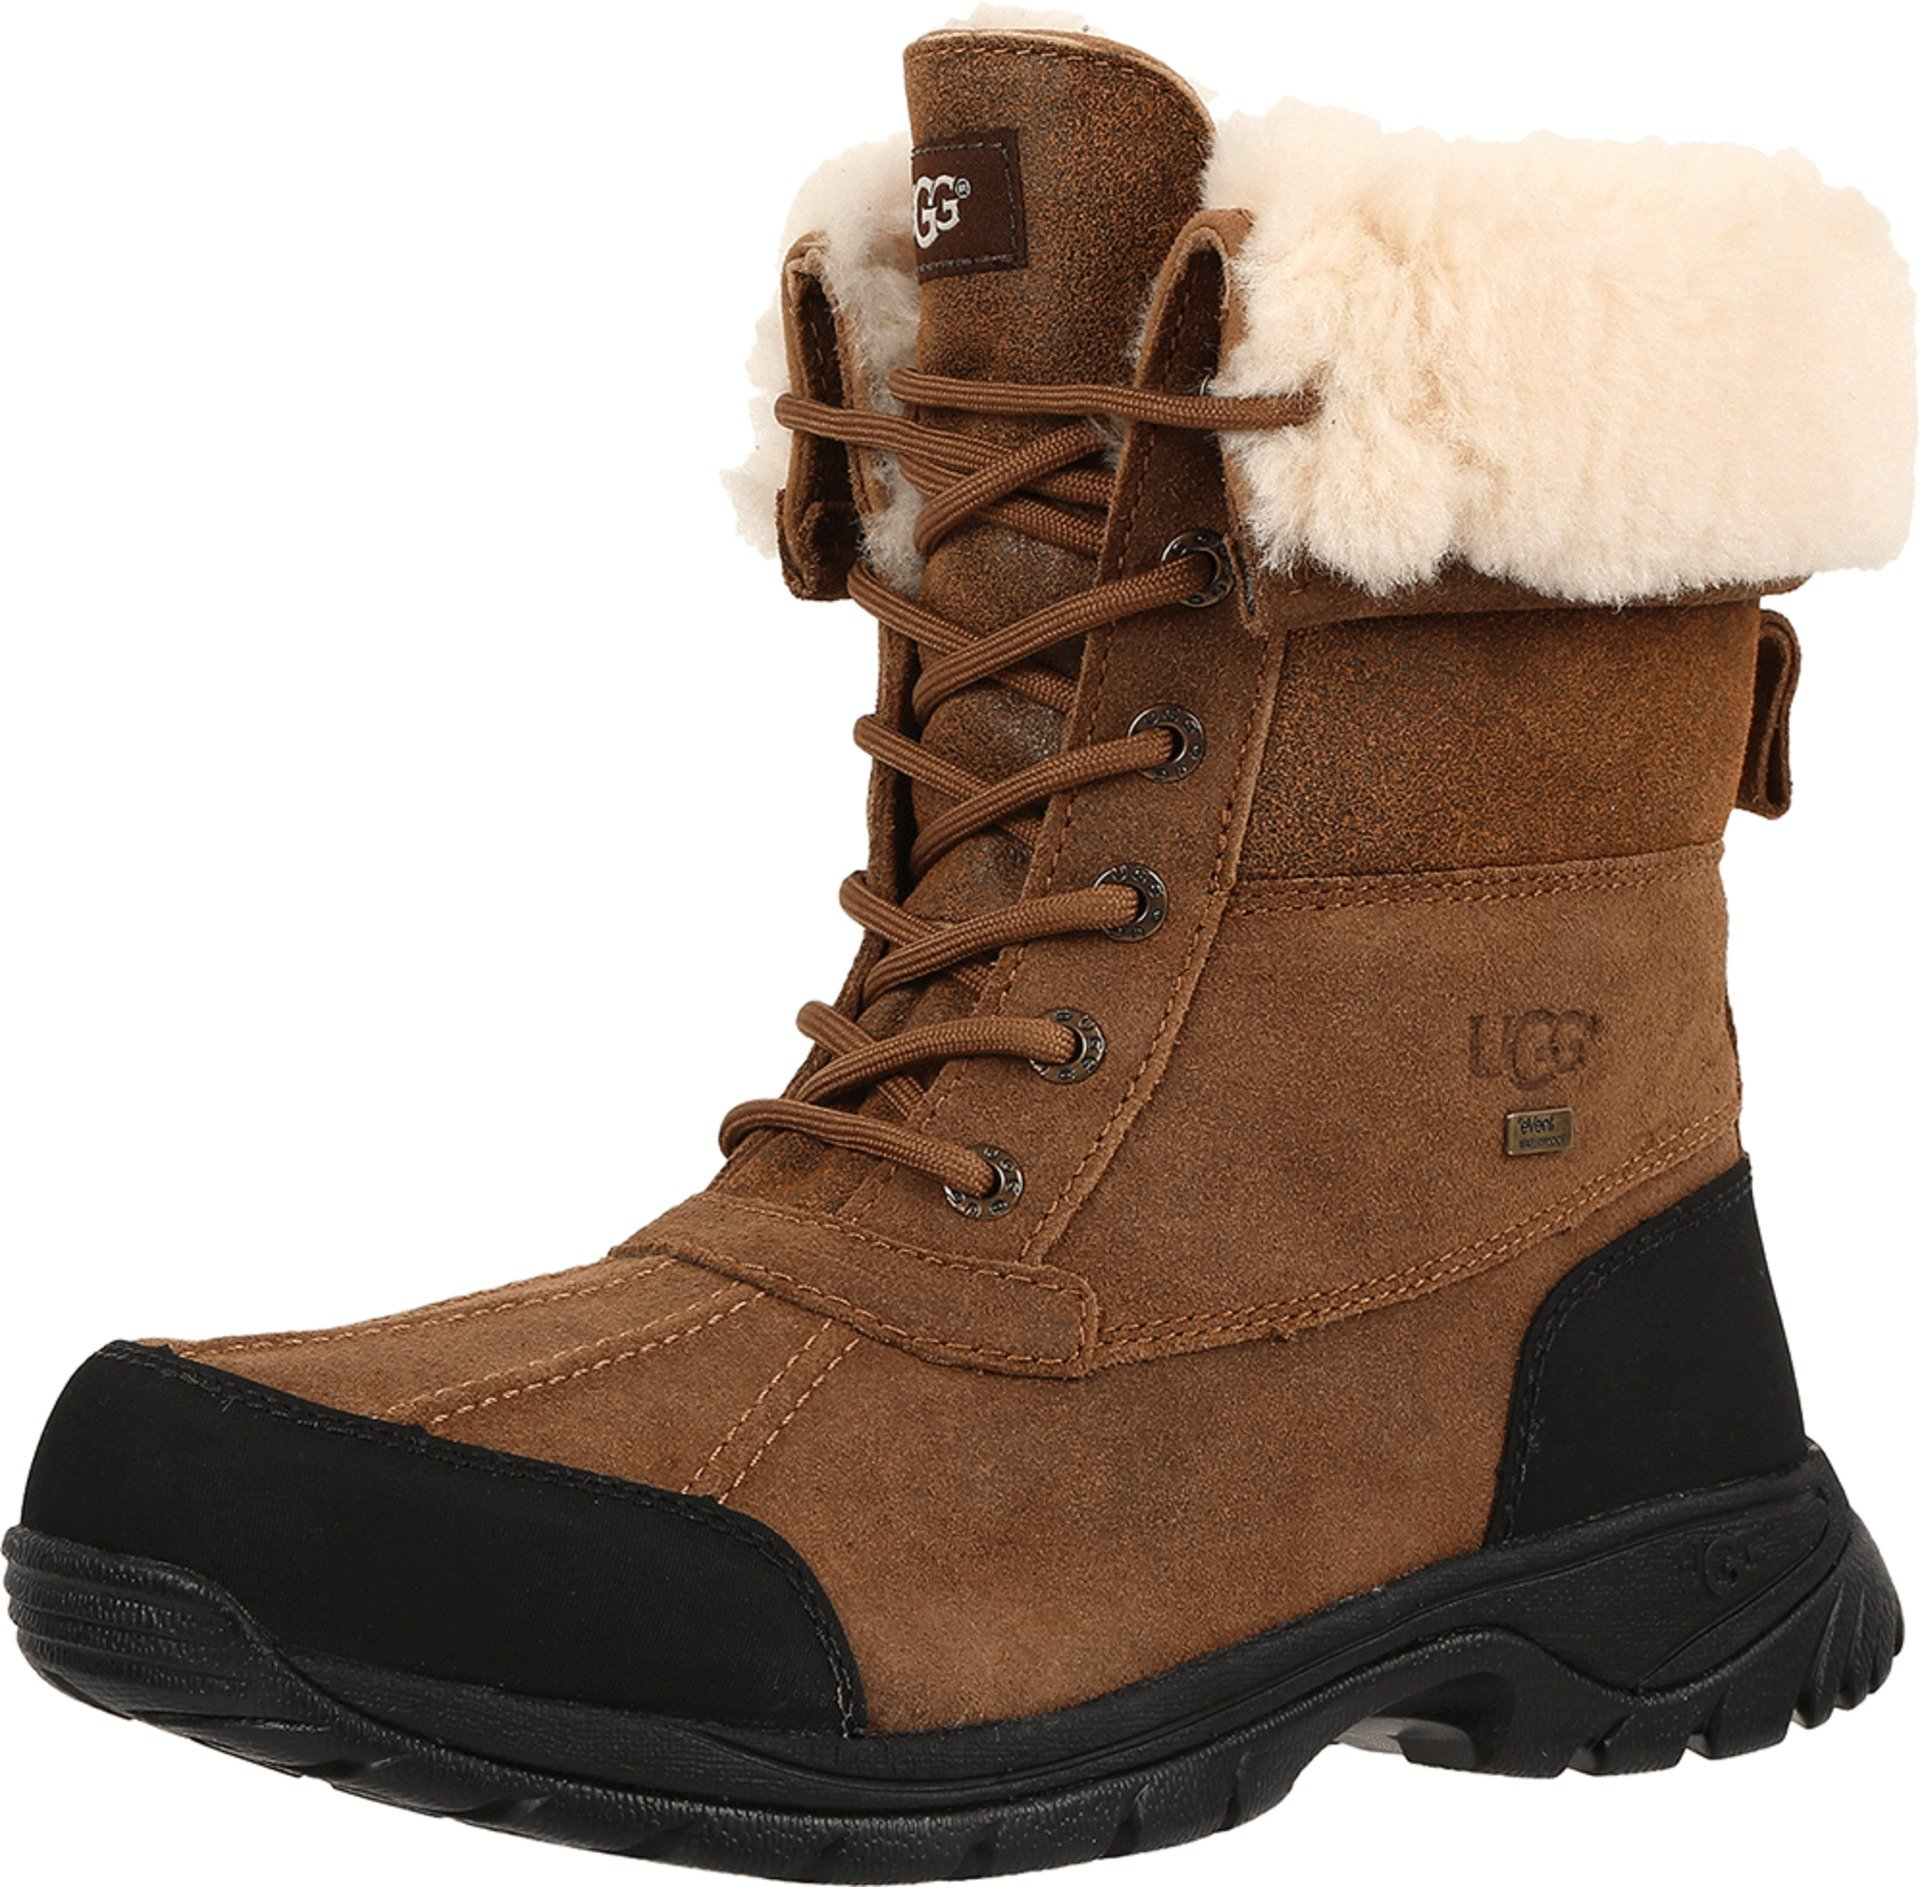 UGG Men's Butte Bomber Snow Boot, Bomber Jacket Chestnut, 12 M US